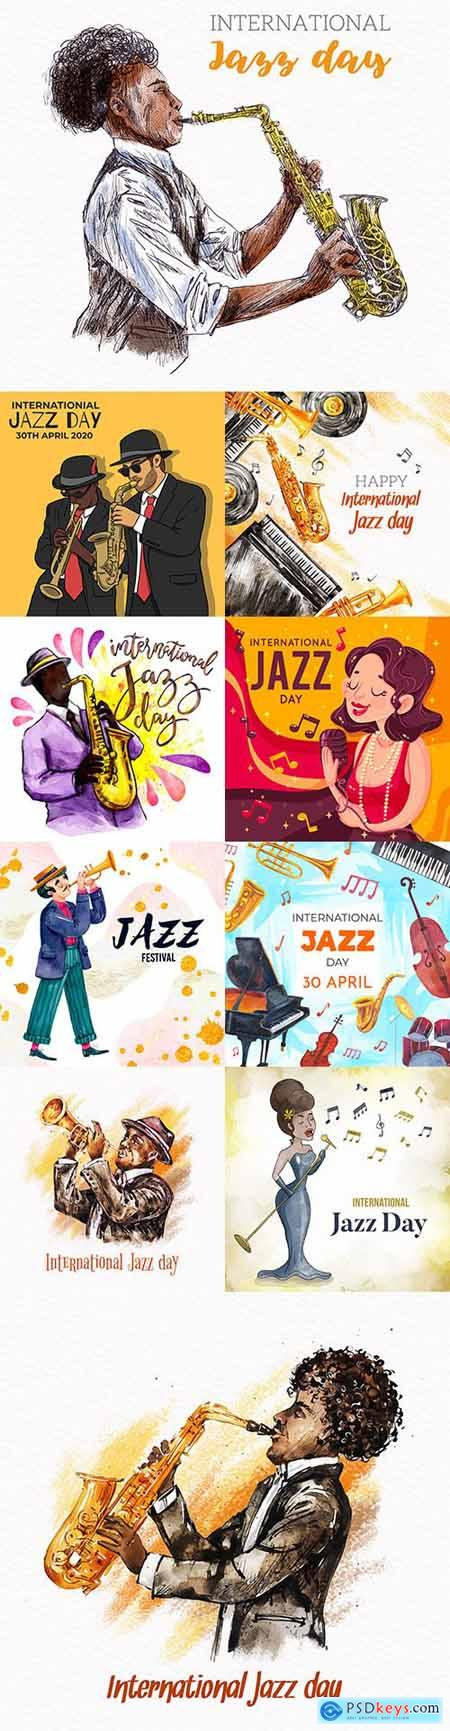 International Jazz Day illustrated watercolor design